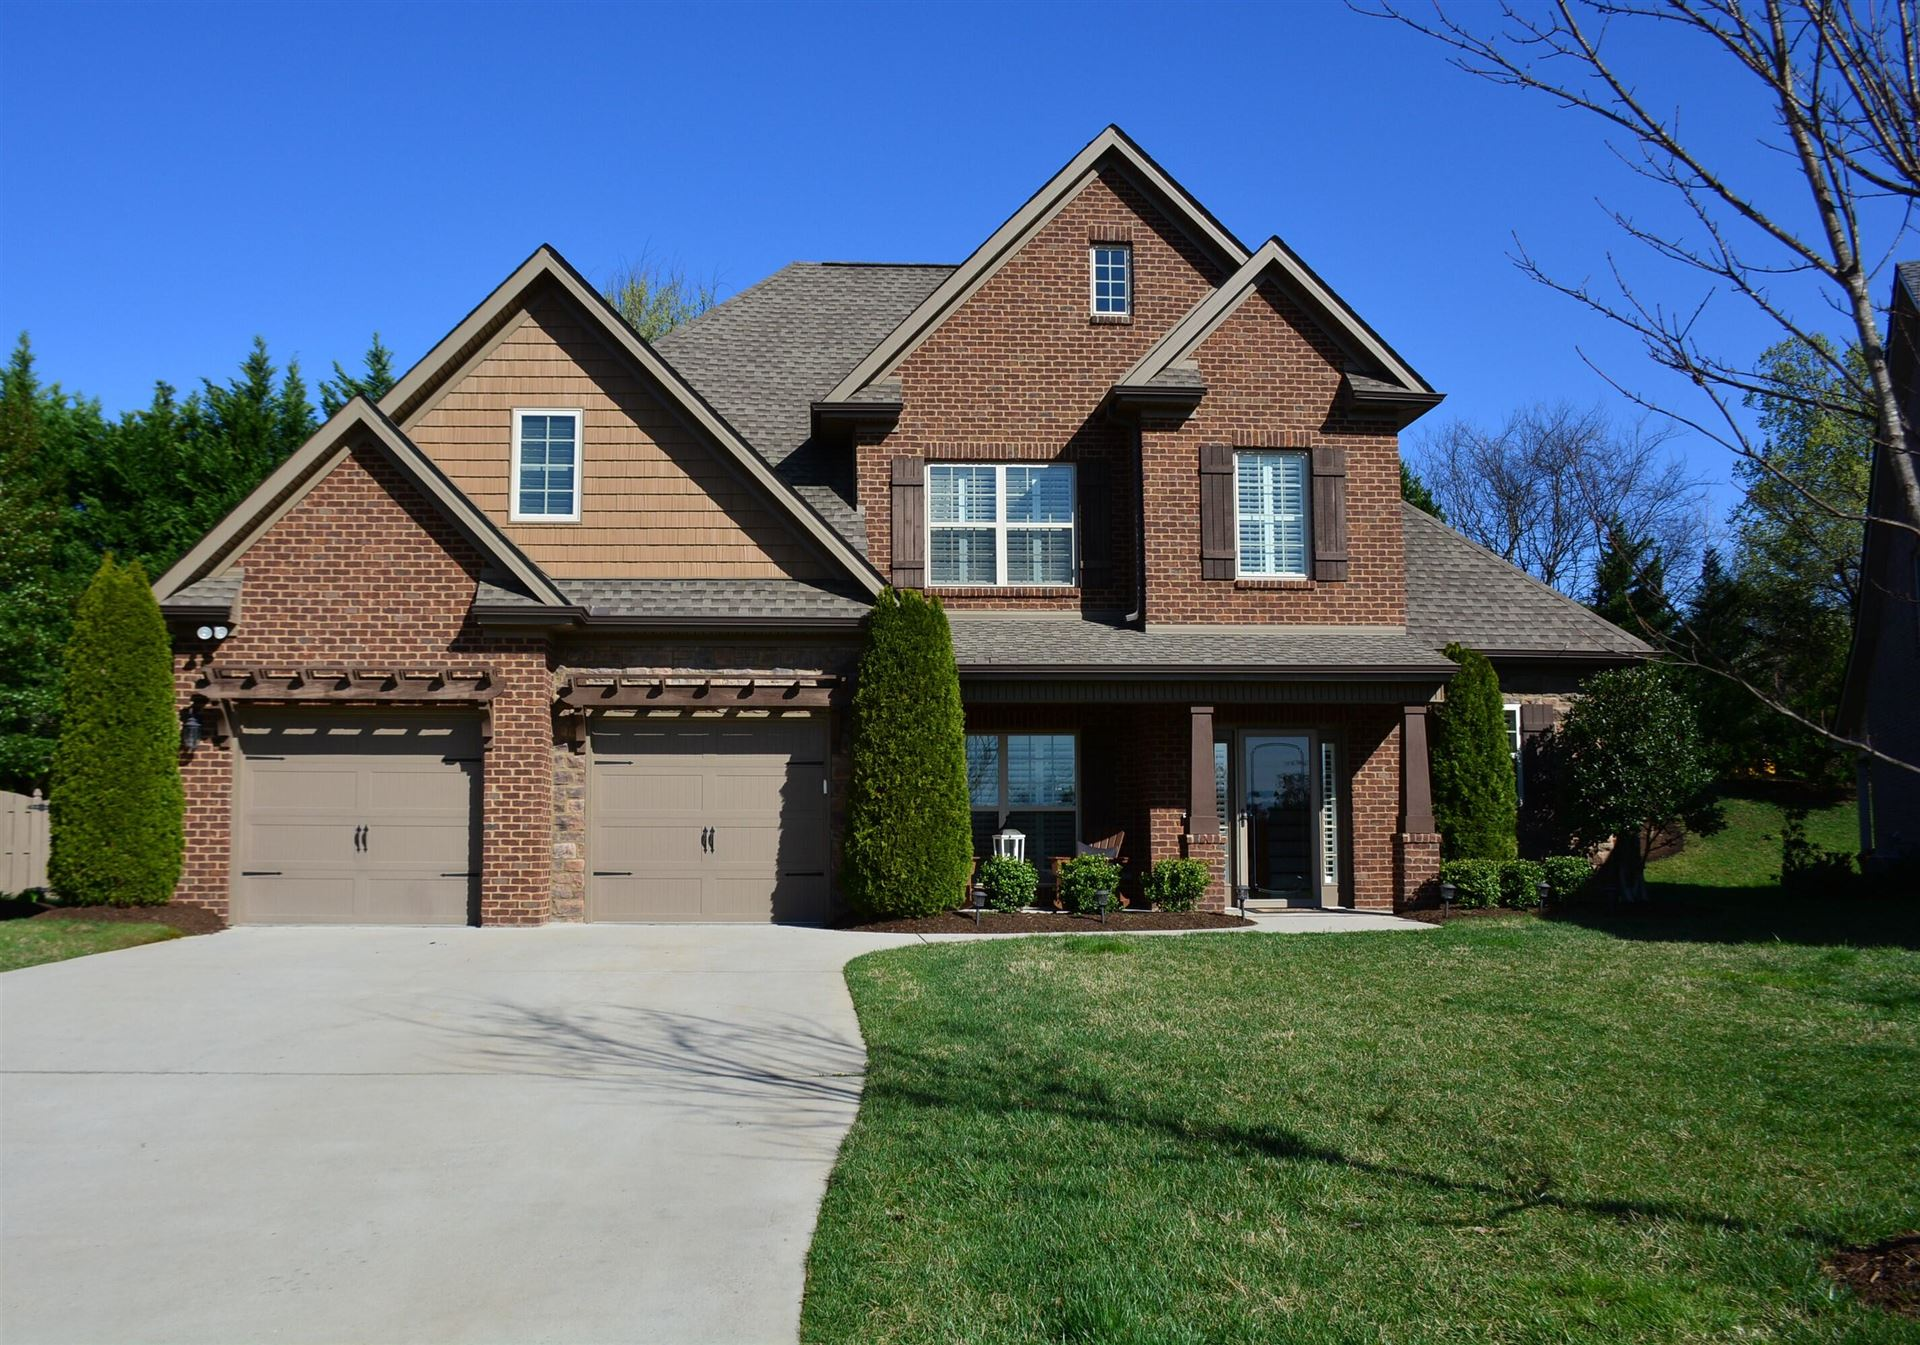 Photo of 8143 Crimson Tree Lane, Knoxville, TN 37919 (MLS # 1149090)